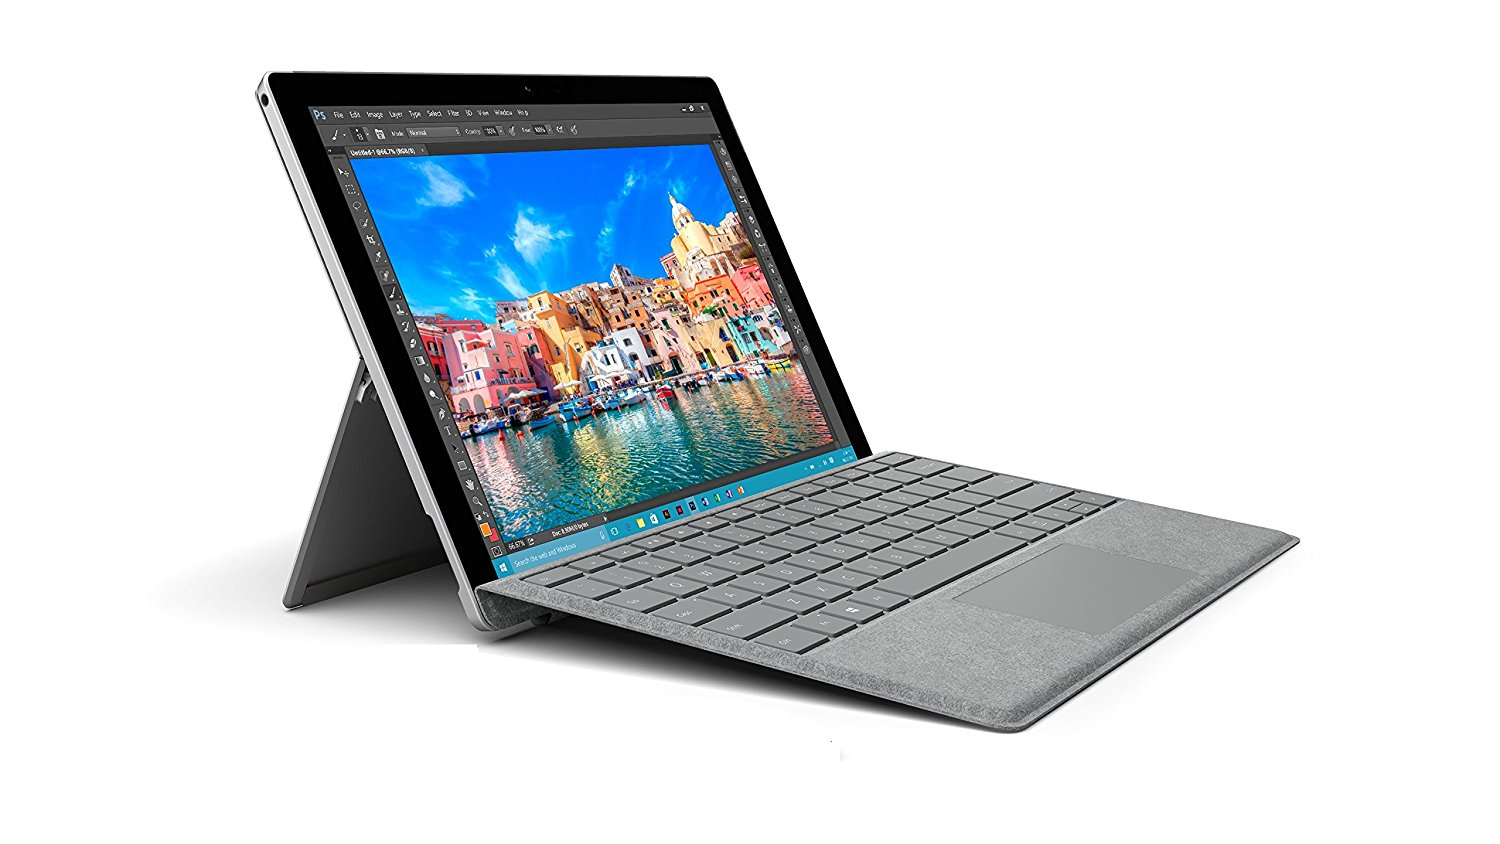 Microsoft Surface Pro 4 tablet PC